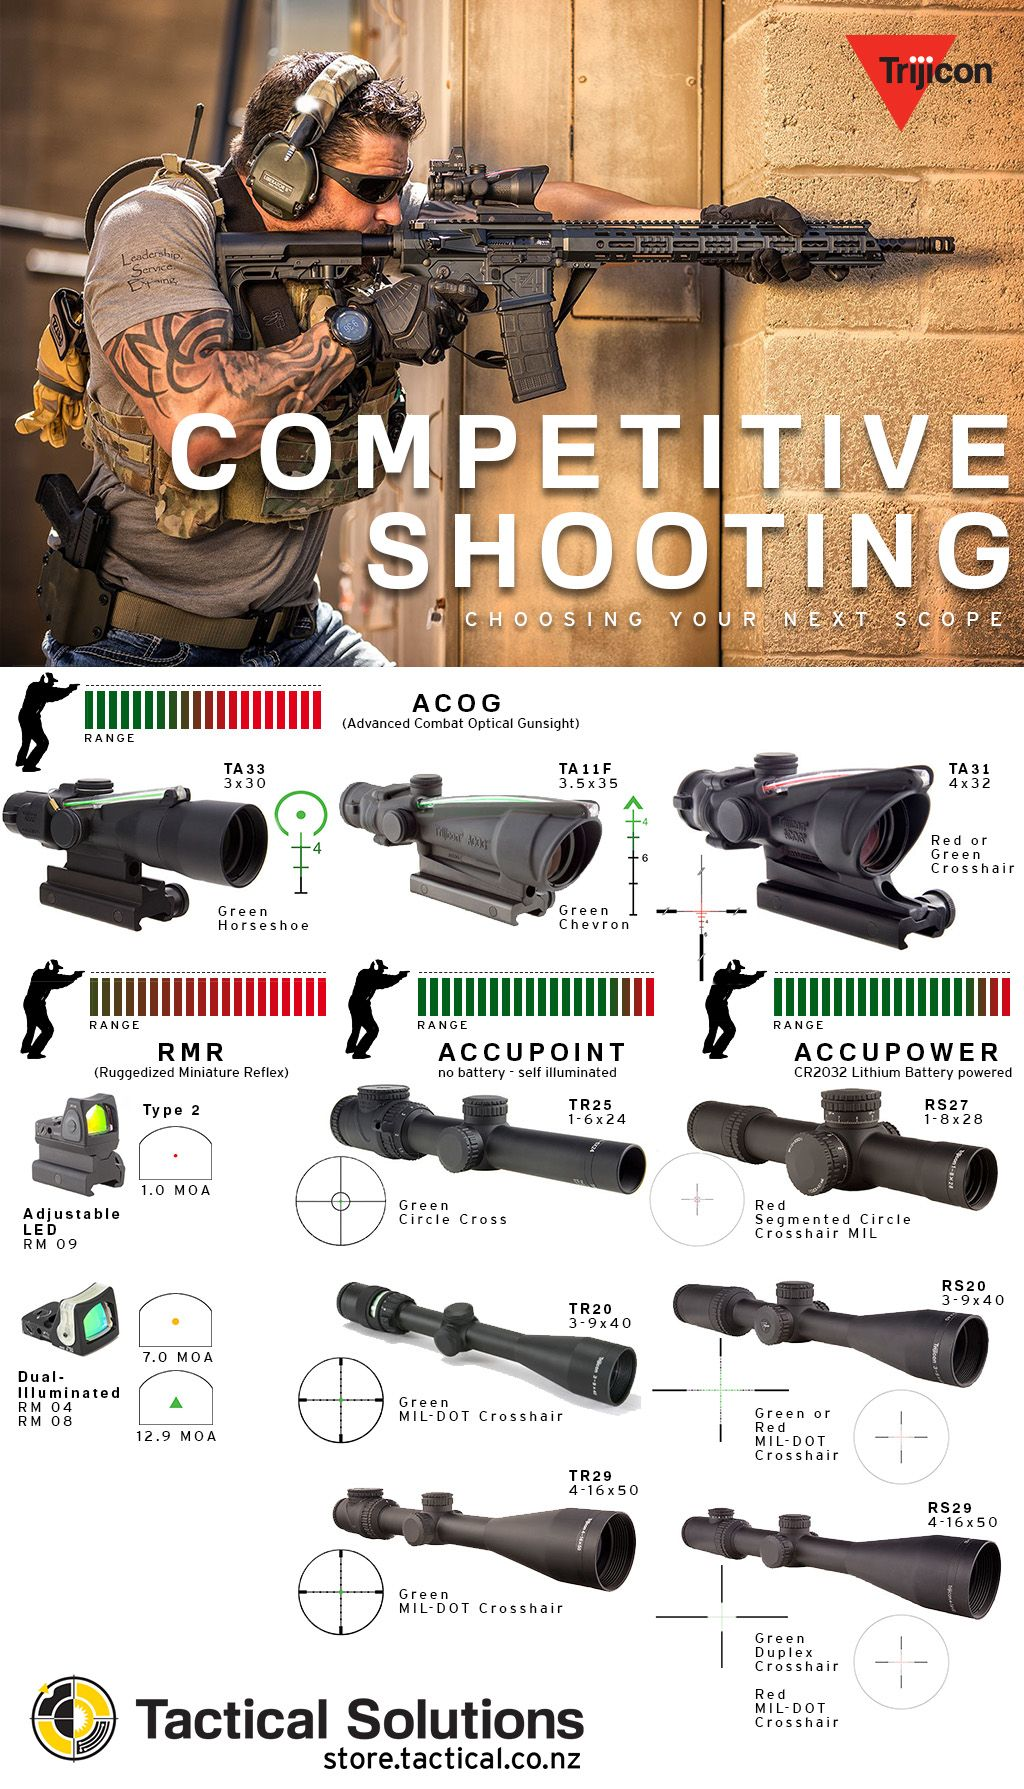 Get focused! Which Trijicon scope should you be looking